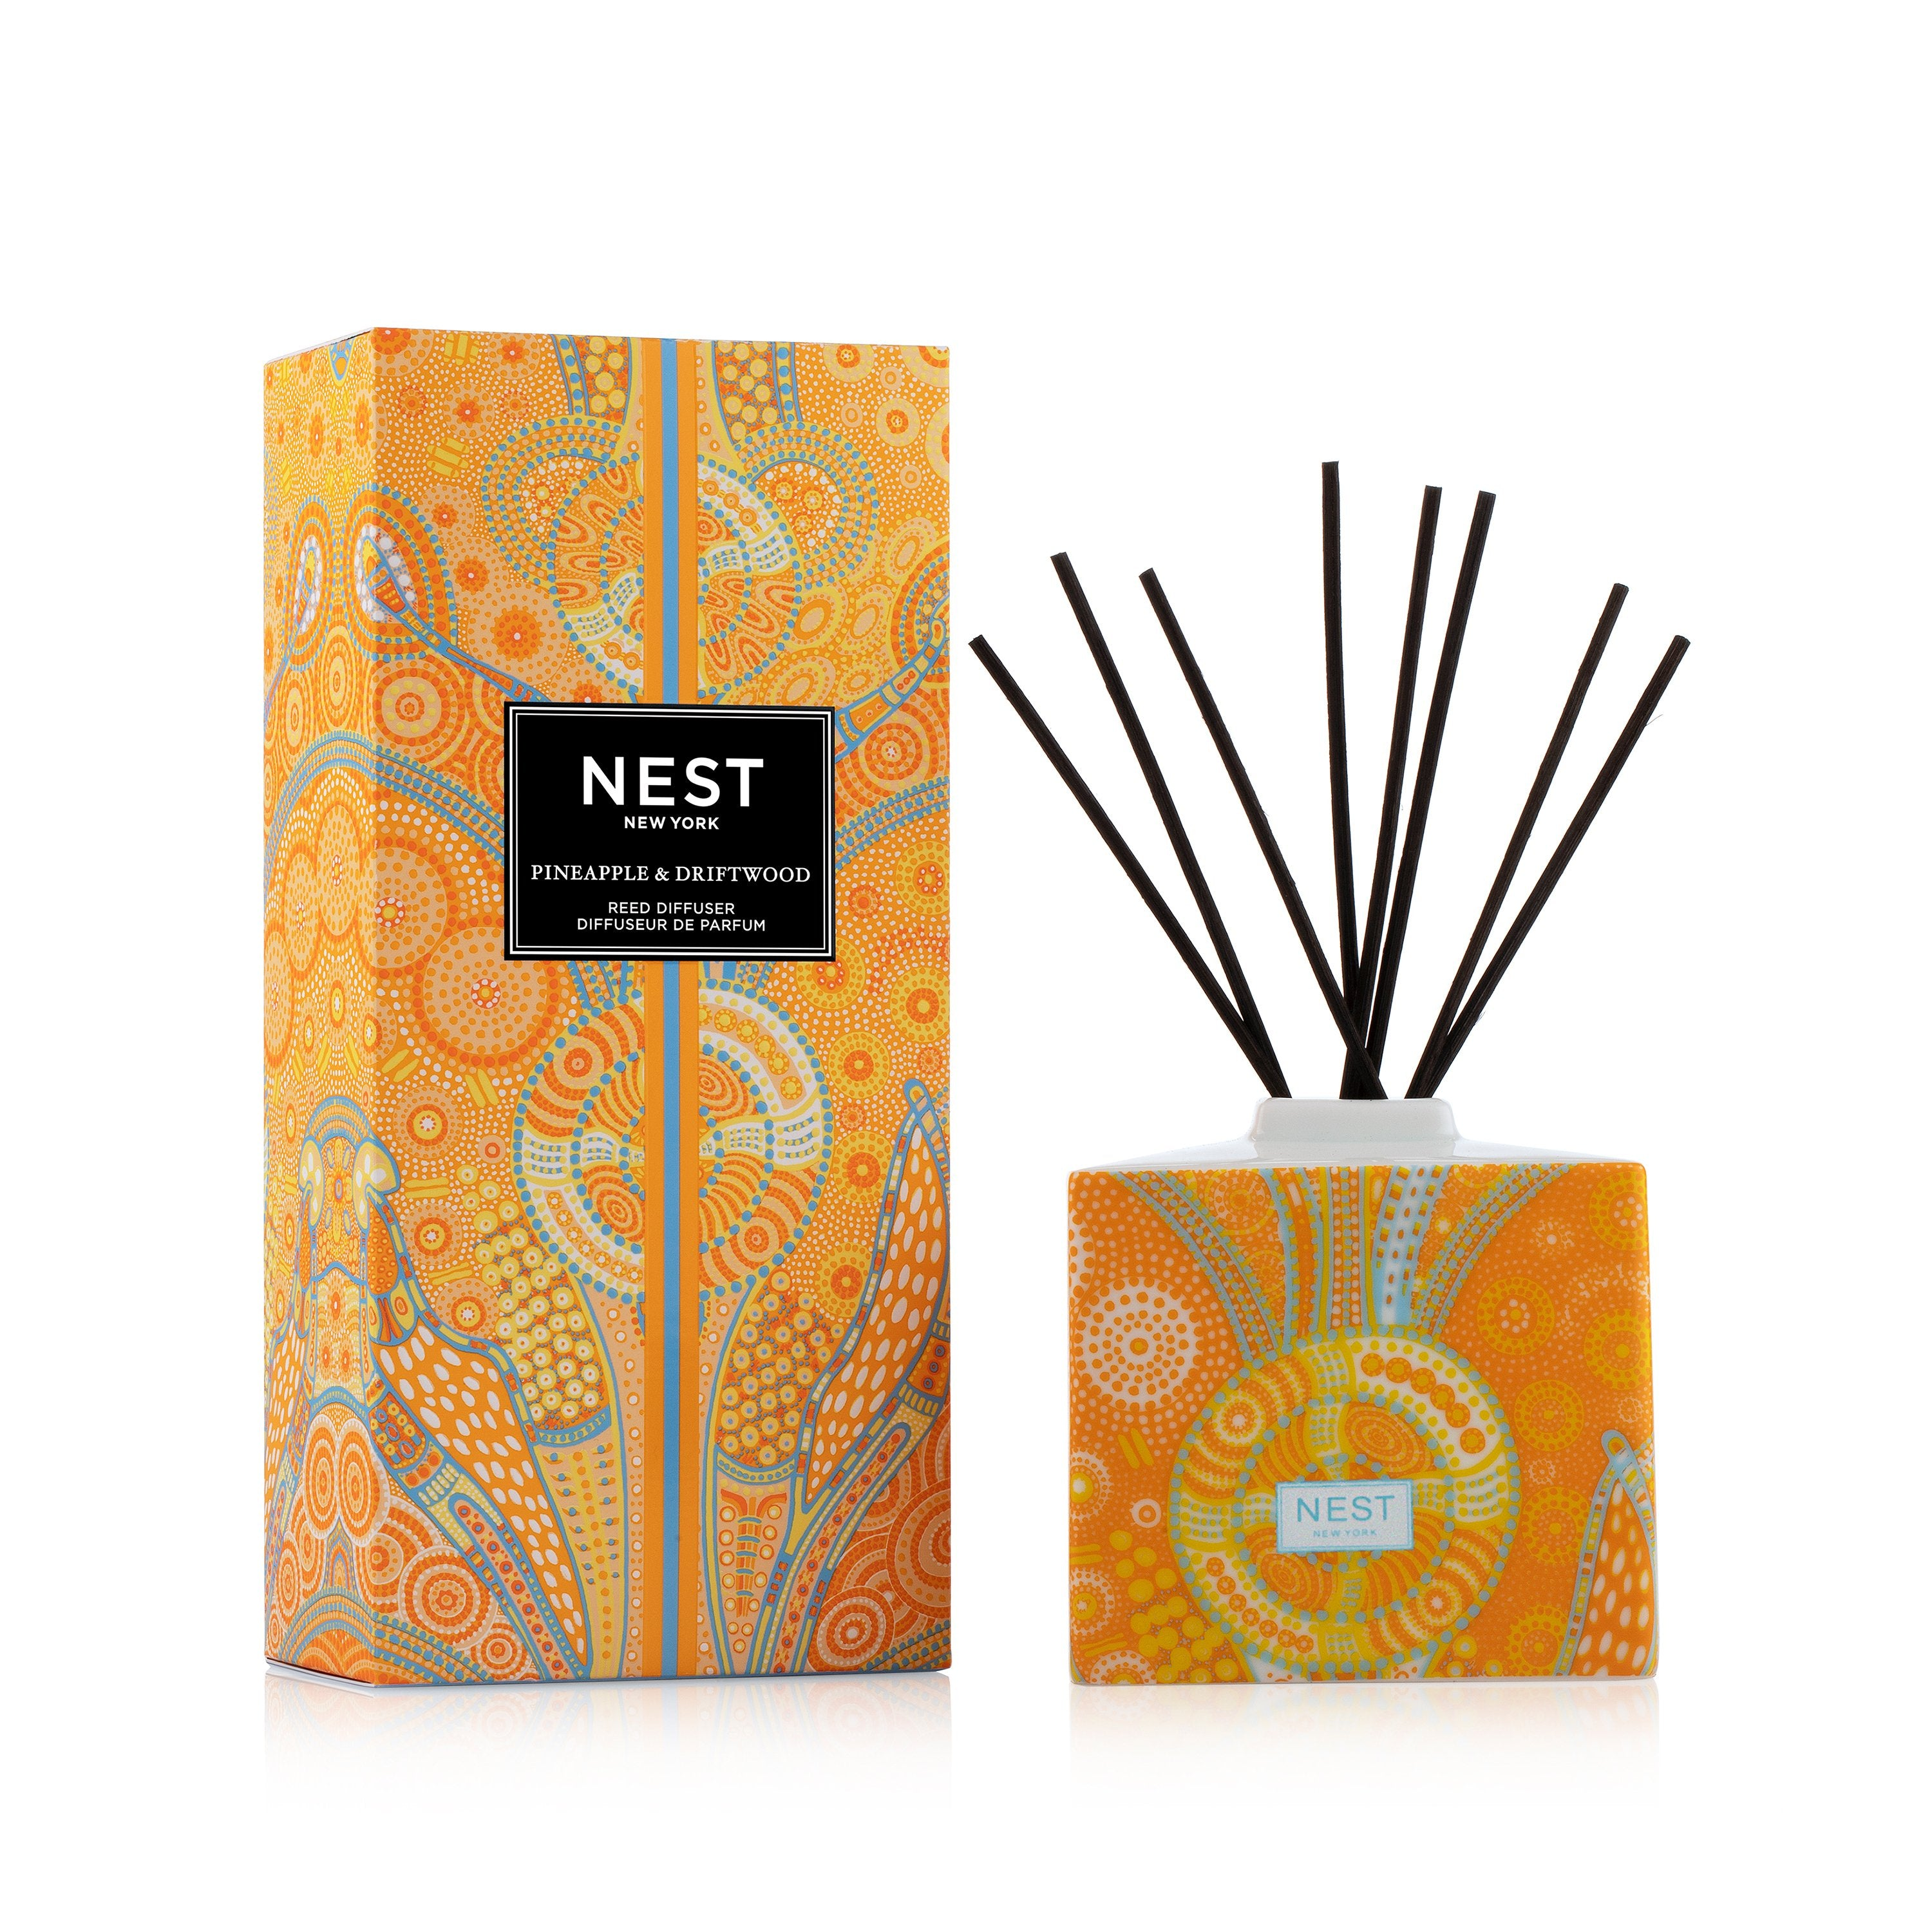 Limited Edition Reed Diffuser Pineapple and Driftwood